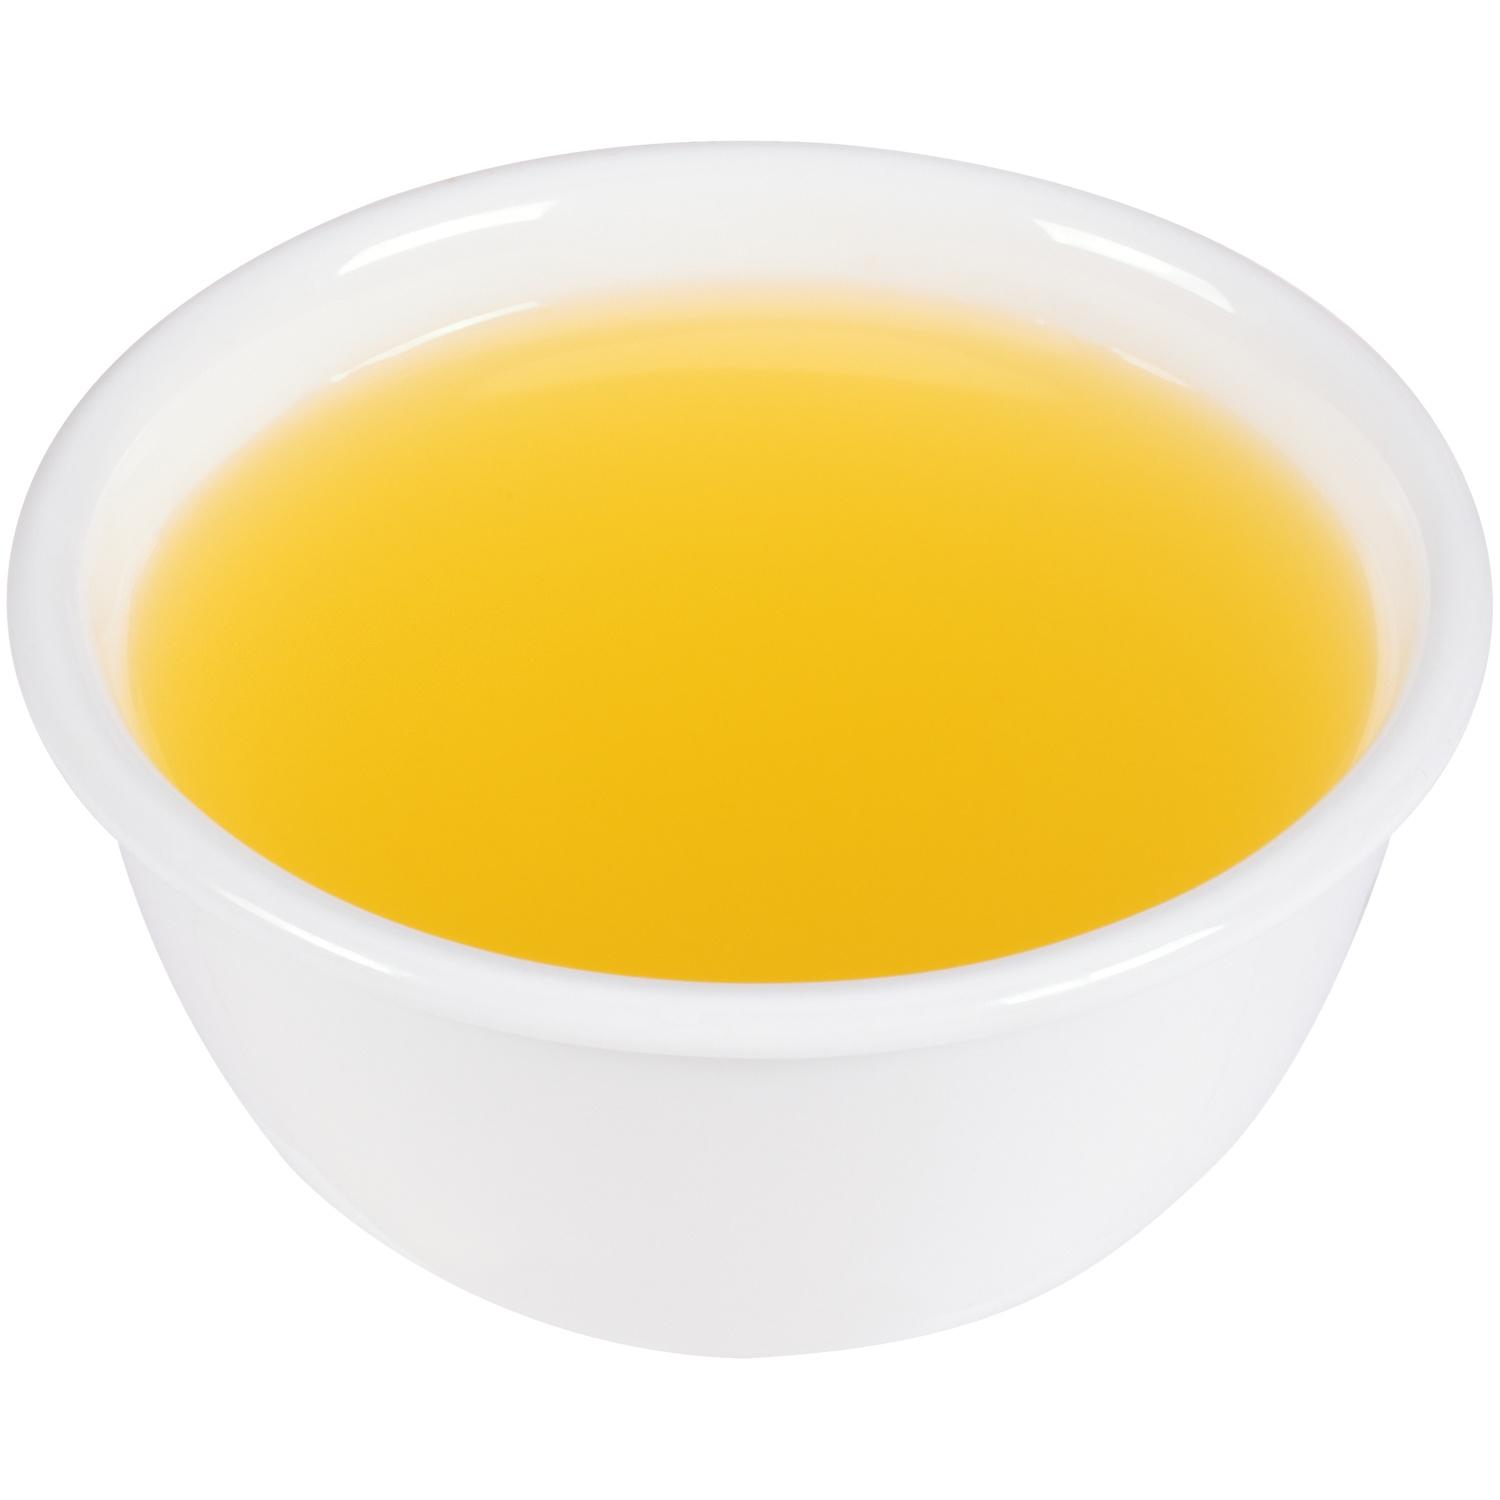 image of Juice Pineapple Not From Concentrate 100% Unsweetened